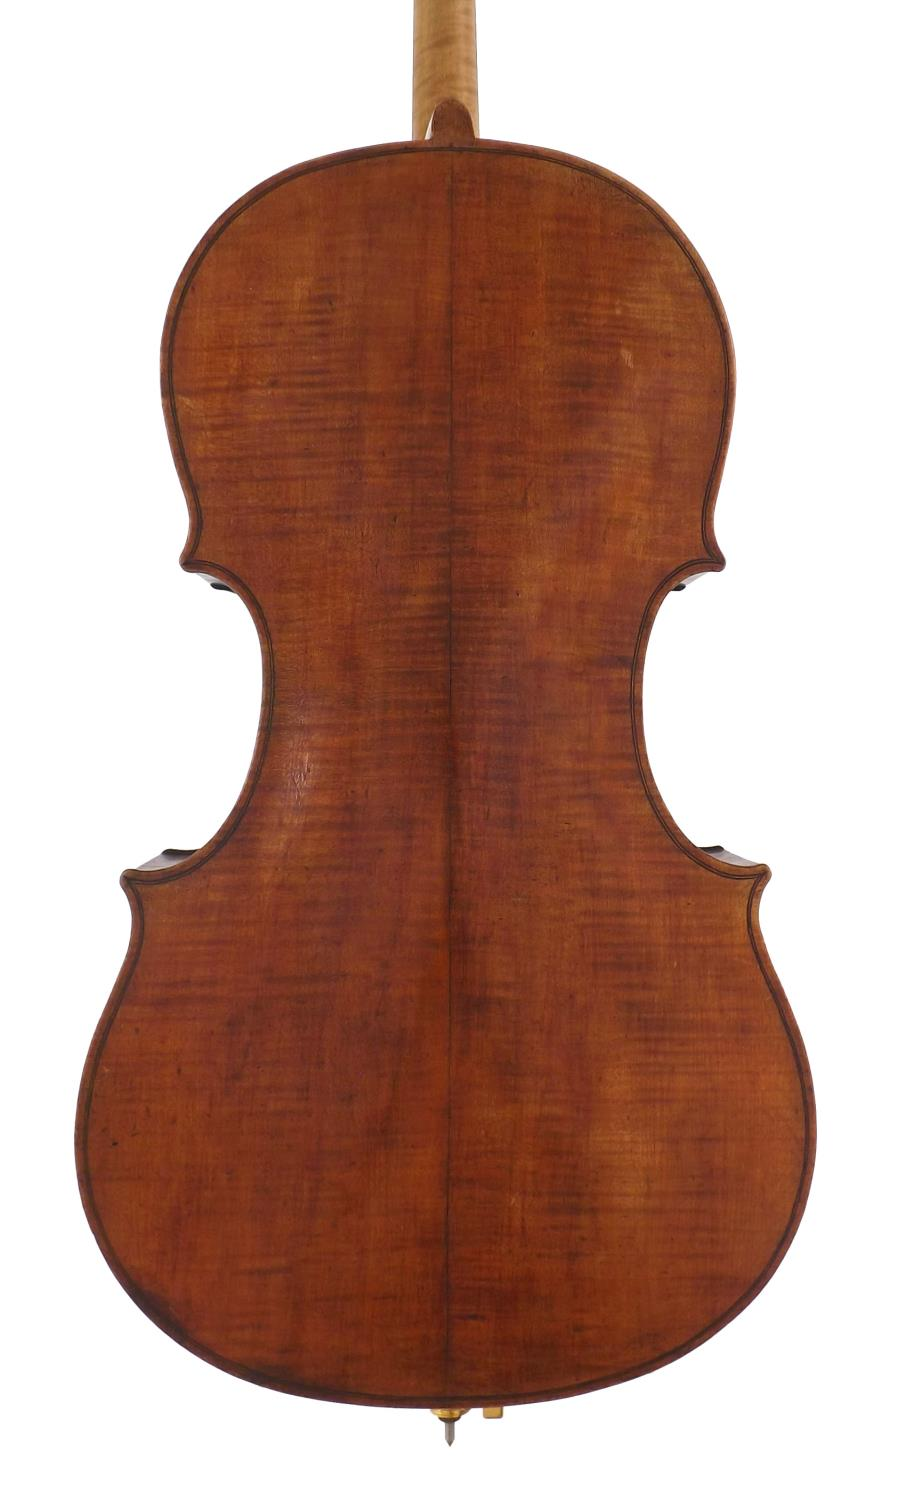 Interesting 19th century violoncello labelled Gustave Mavard, Brussels 1889, the two piece back of - Image 2 of 3